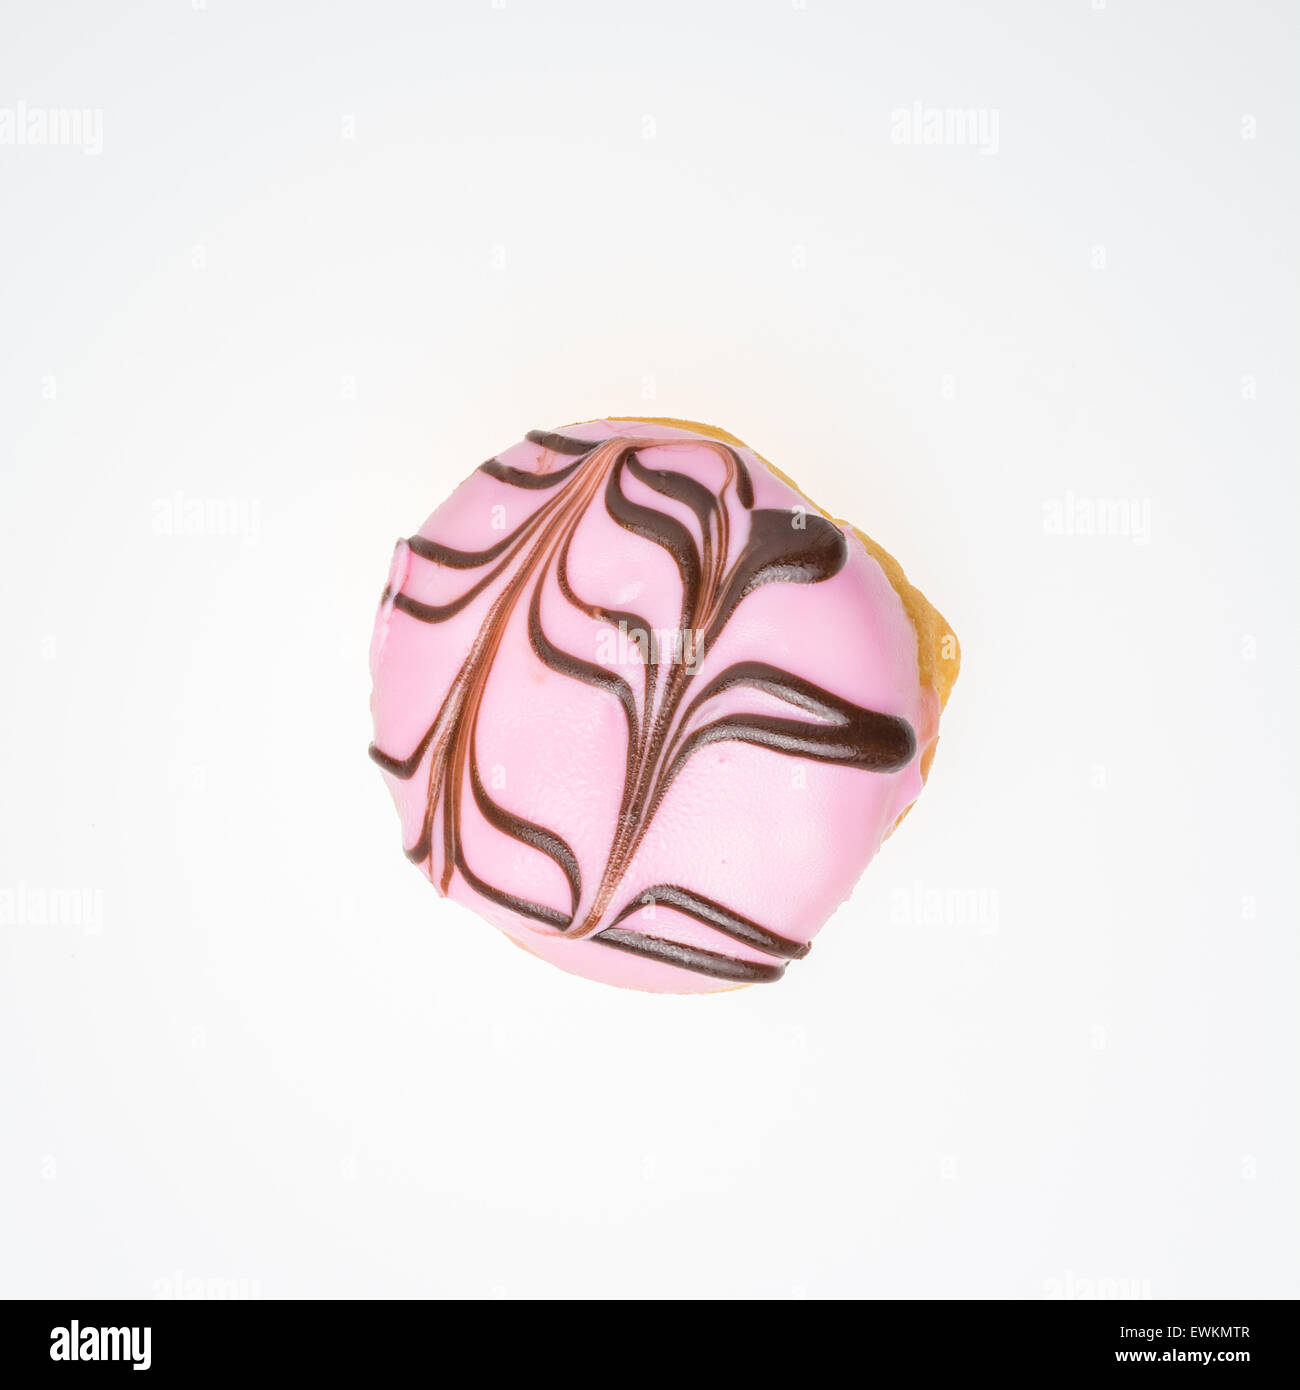 Strawberry flavored donut. Topped with chocolate isolated on White Background - Stock Image